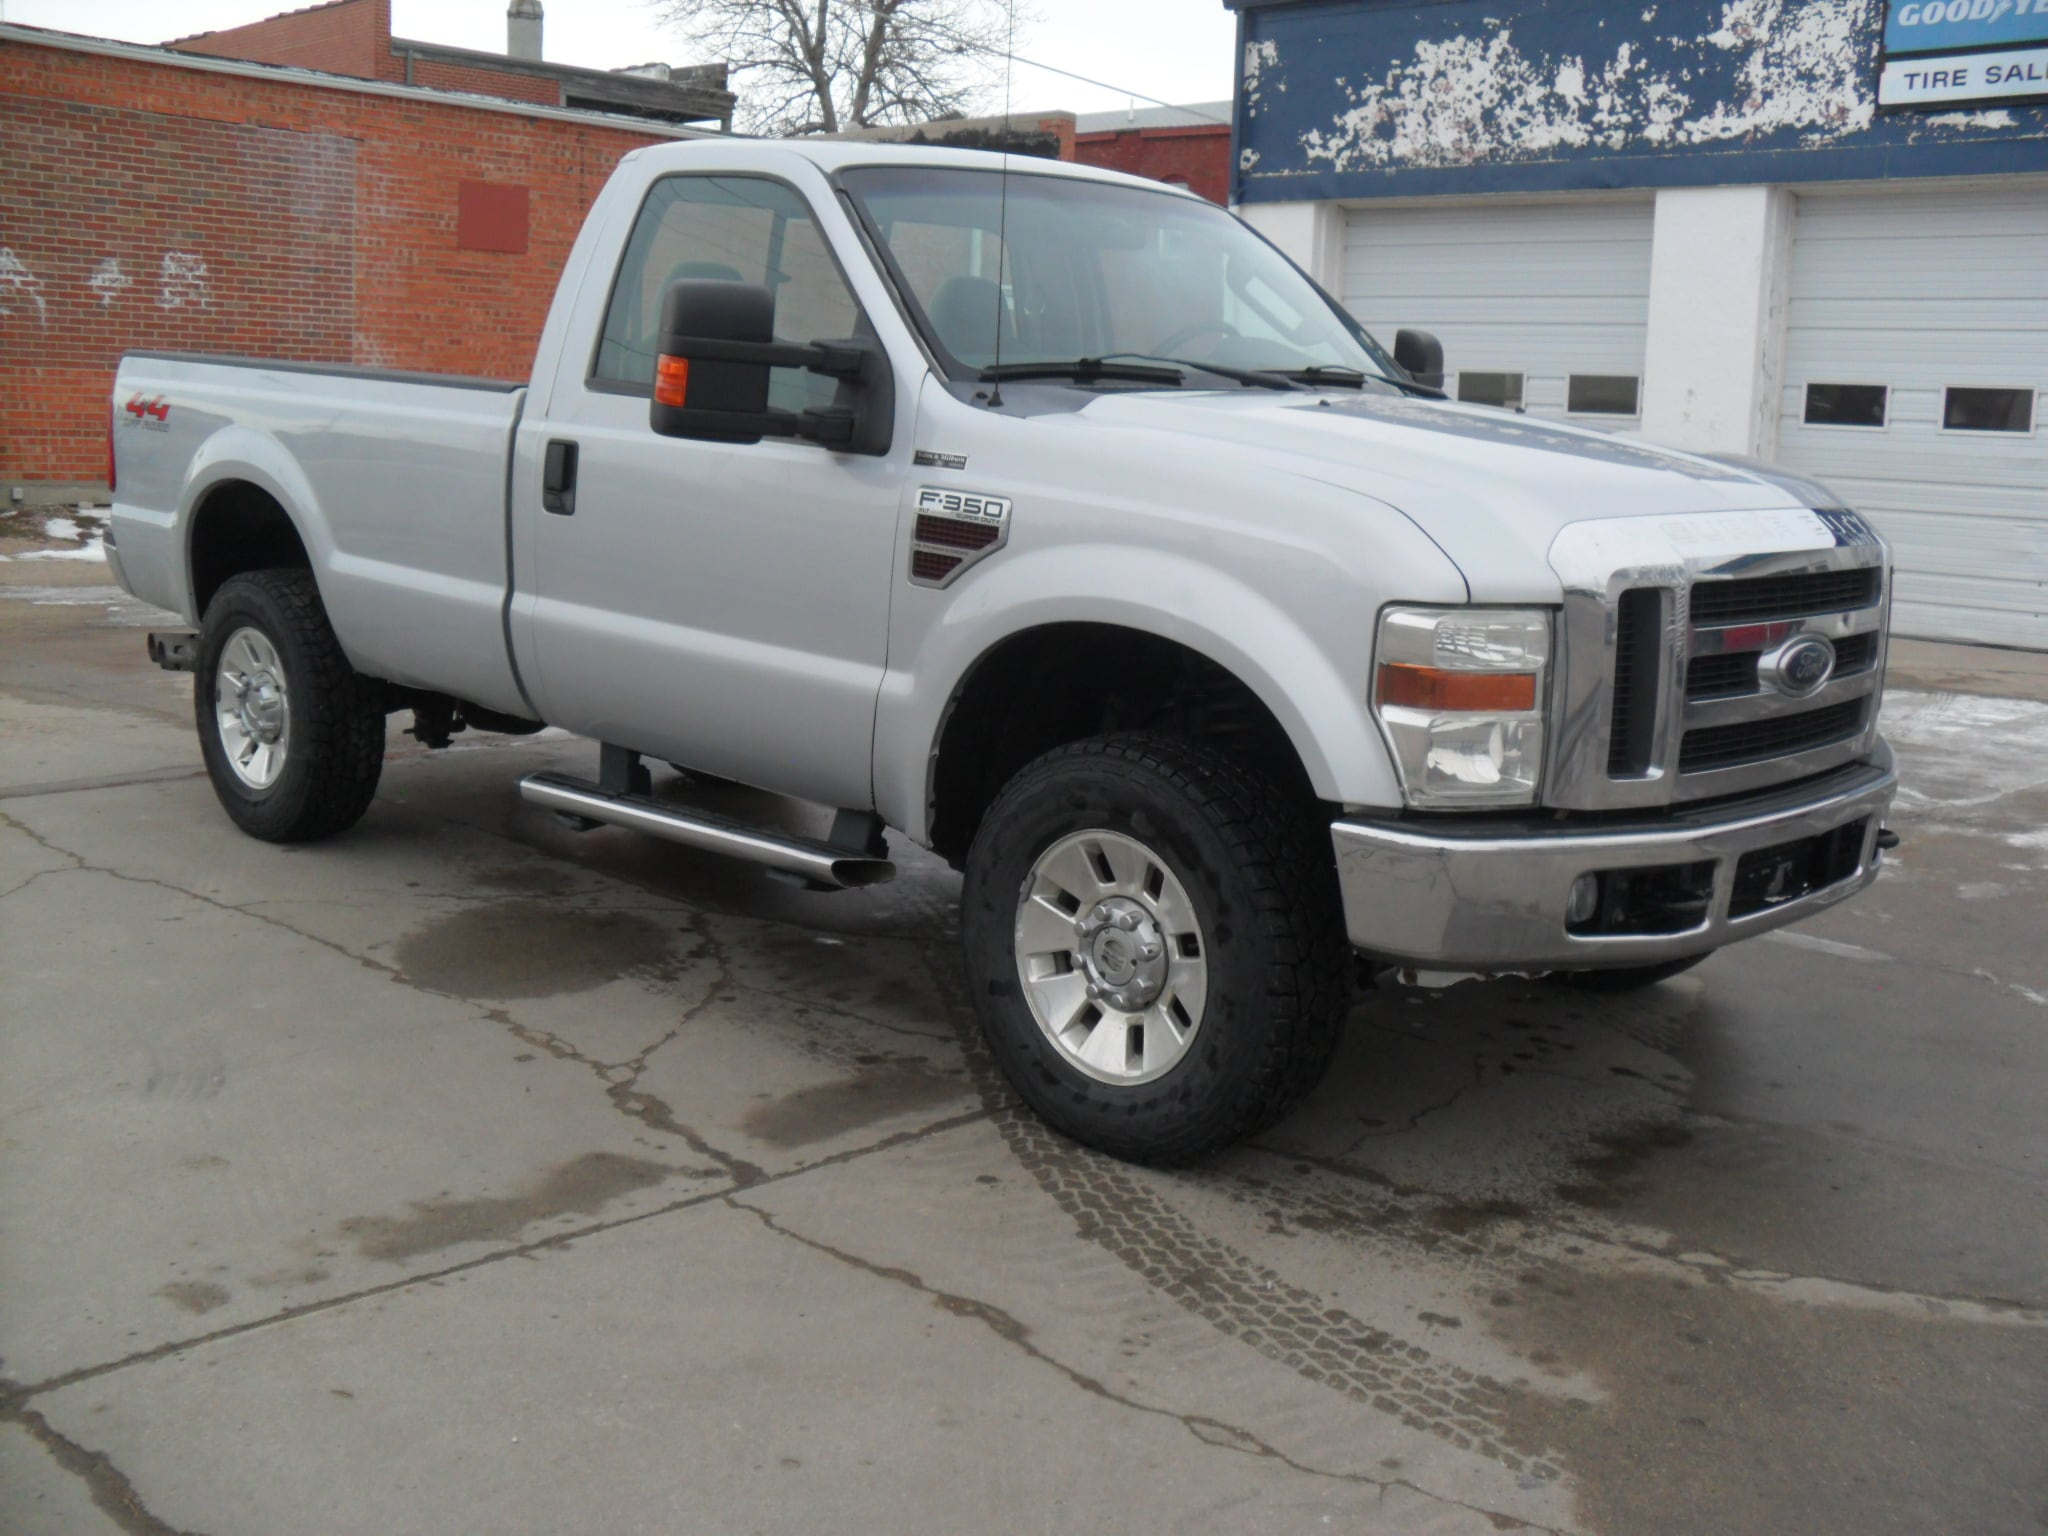 2008 Ford F-350 Super Duty Long Bed Truck